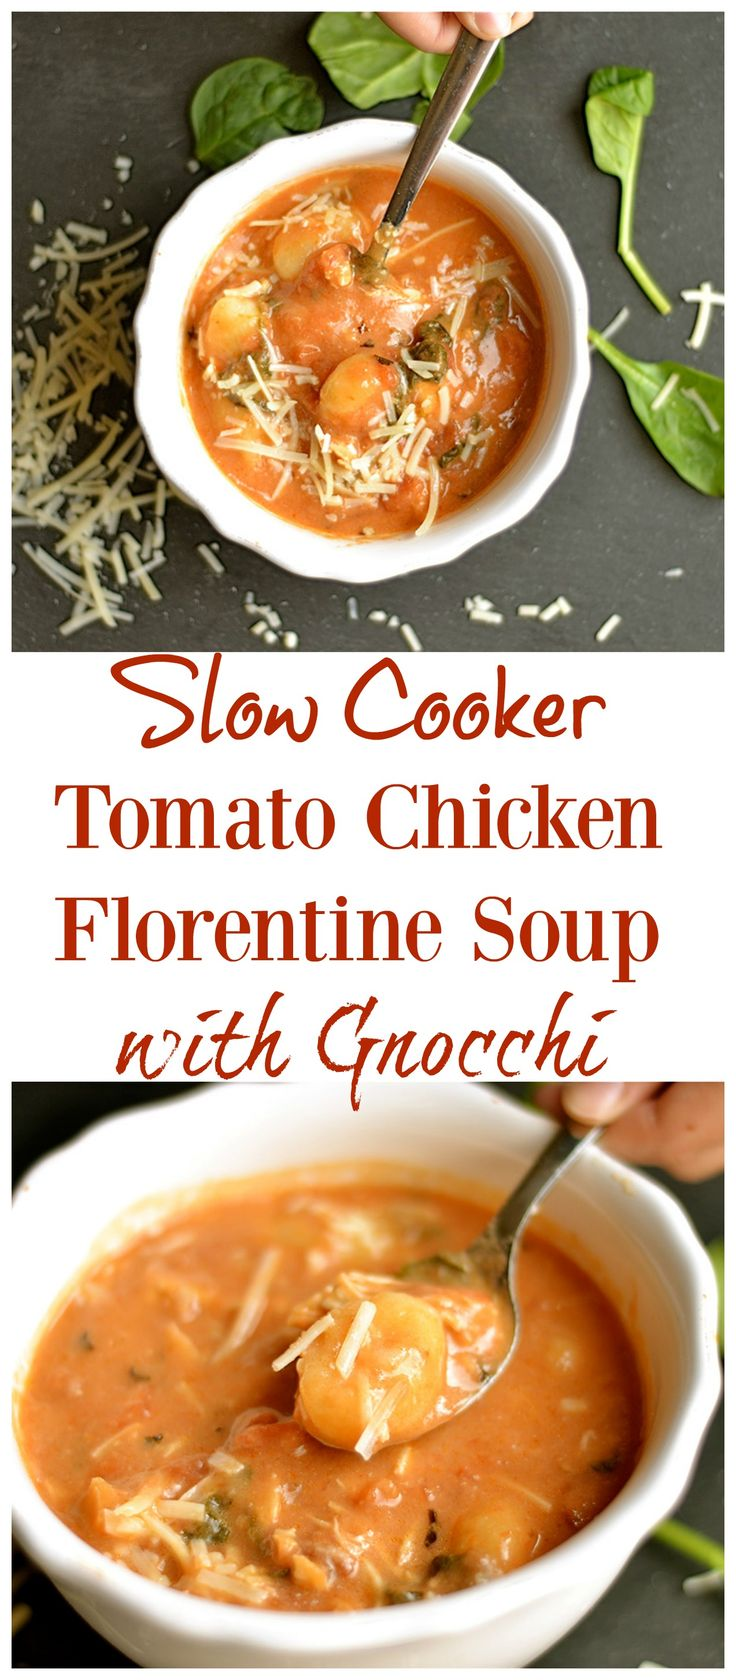 The EASIEST soup EVER!!! And it's so delicious!! A creamy tomato soup filled with garlic and herb flavor, fresh spinach, chicken, and gnocchi.